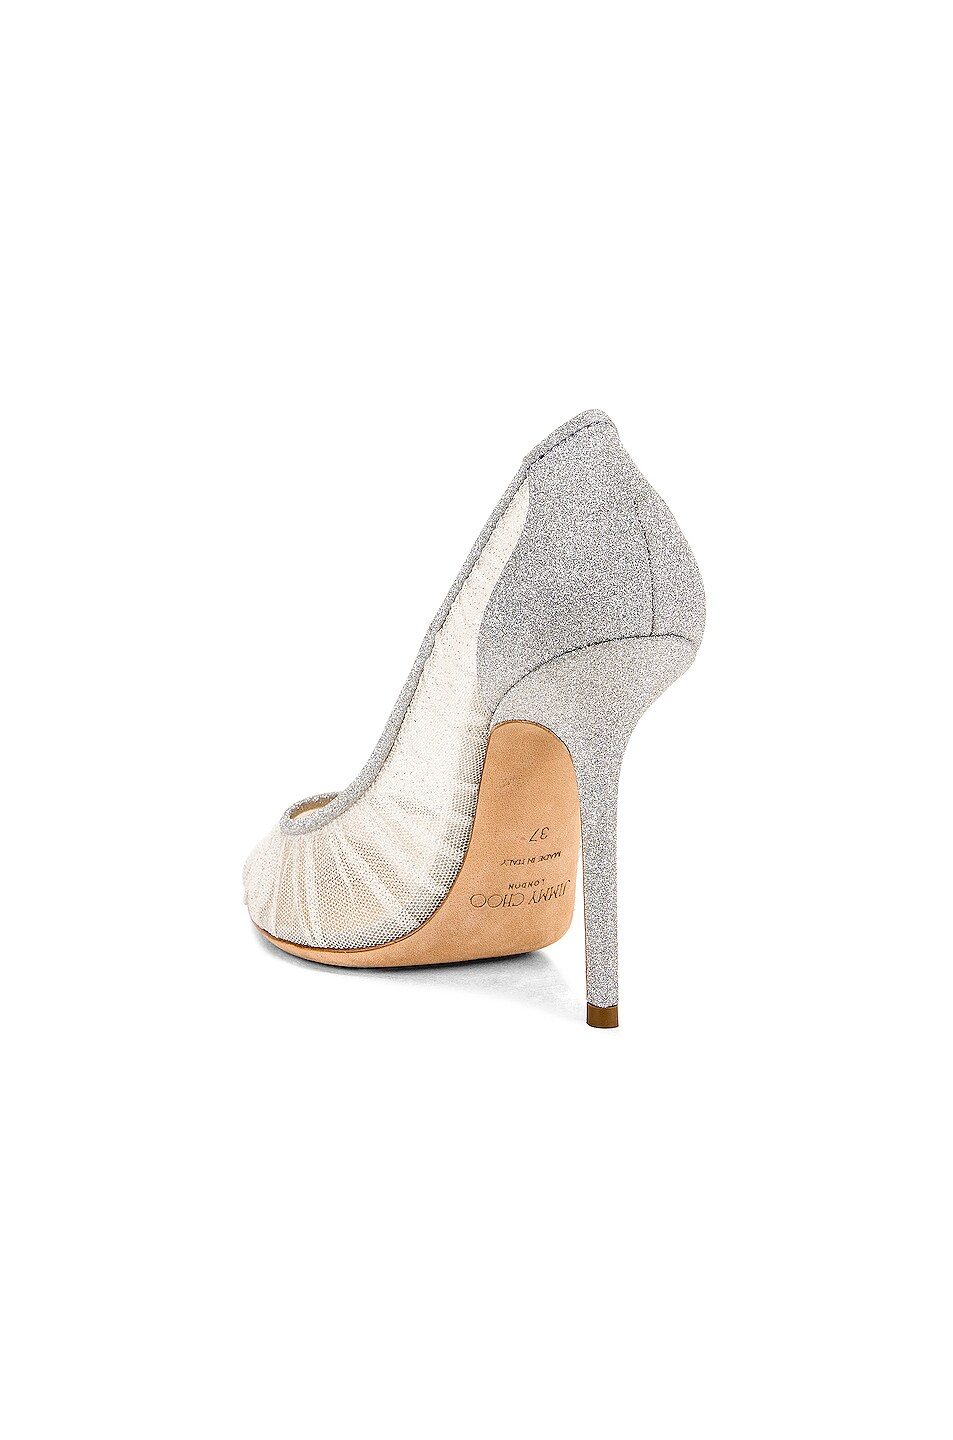 Image 3 of Jimmy Choo Love 100 Fine Glitter Heel in Ivory & Silver